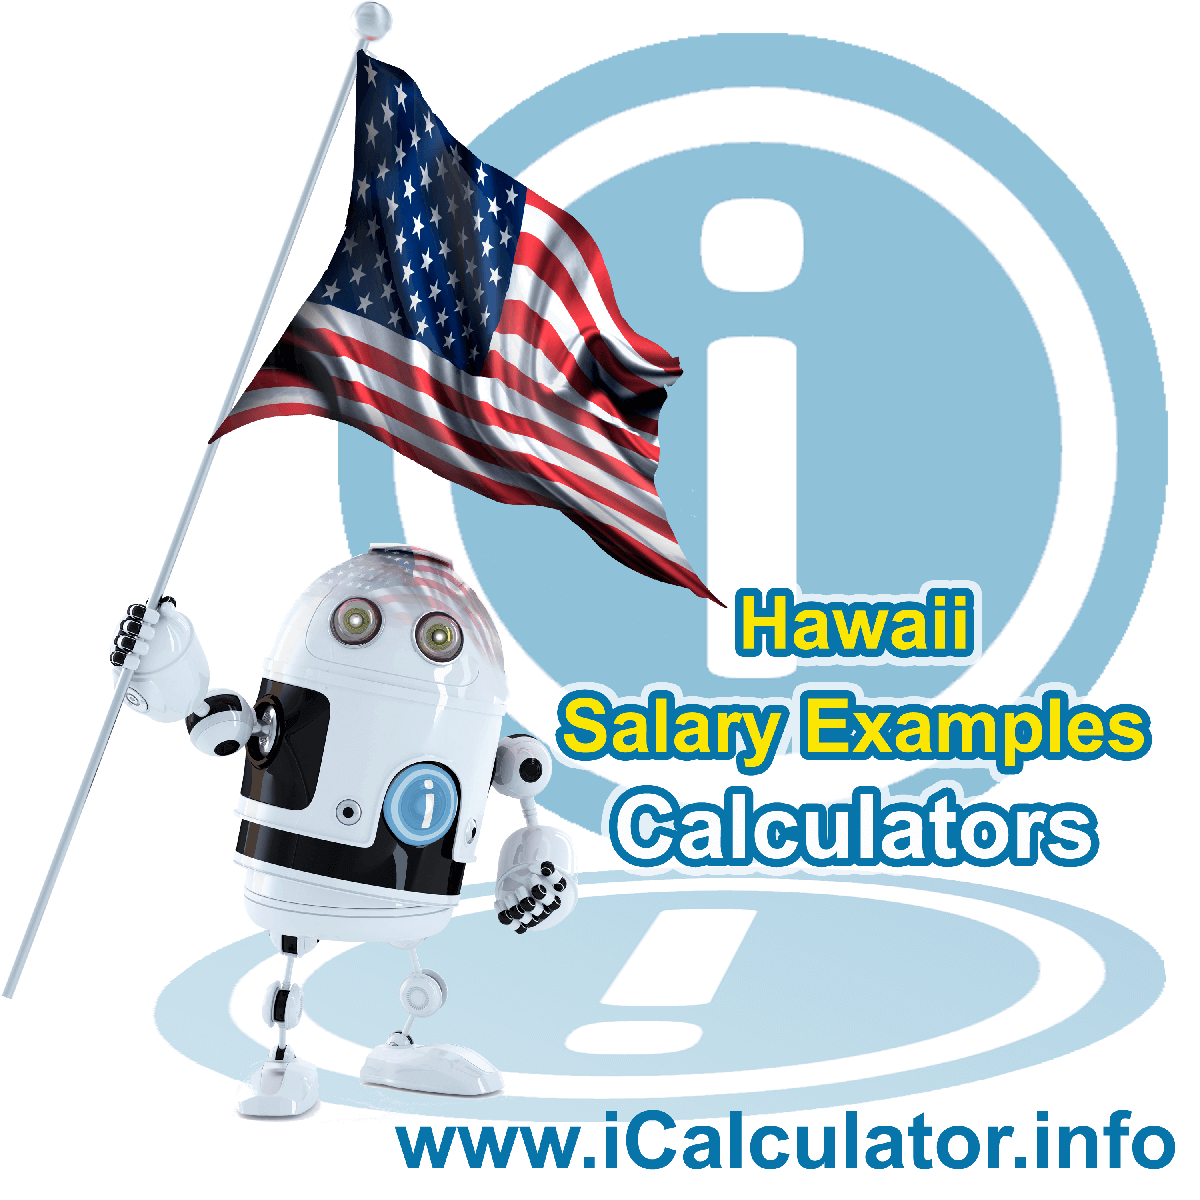 Hawaii Salary Example for $120.00 in 2020 | iCalculator | $120.00 salary example for employee and employer paying Hawaii State tincome taxes. Detailed salary after tax calculation including Hawaii State Tax, Federal State Tax, Medicare Deductions, Social Security, Capital Gains and other income tax and salary deductions complete with supporting Hawaii state tax tables